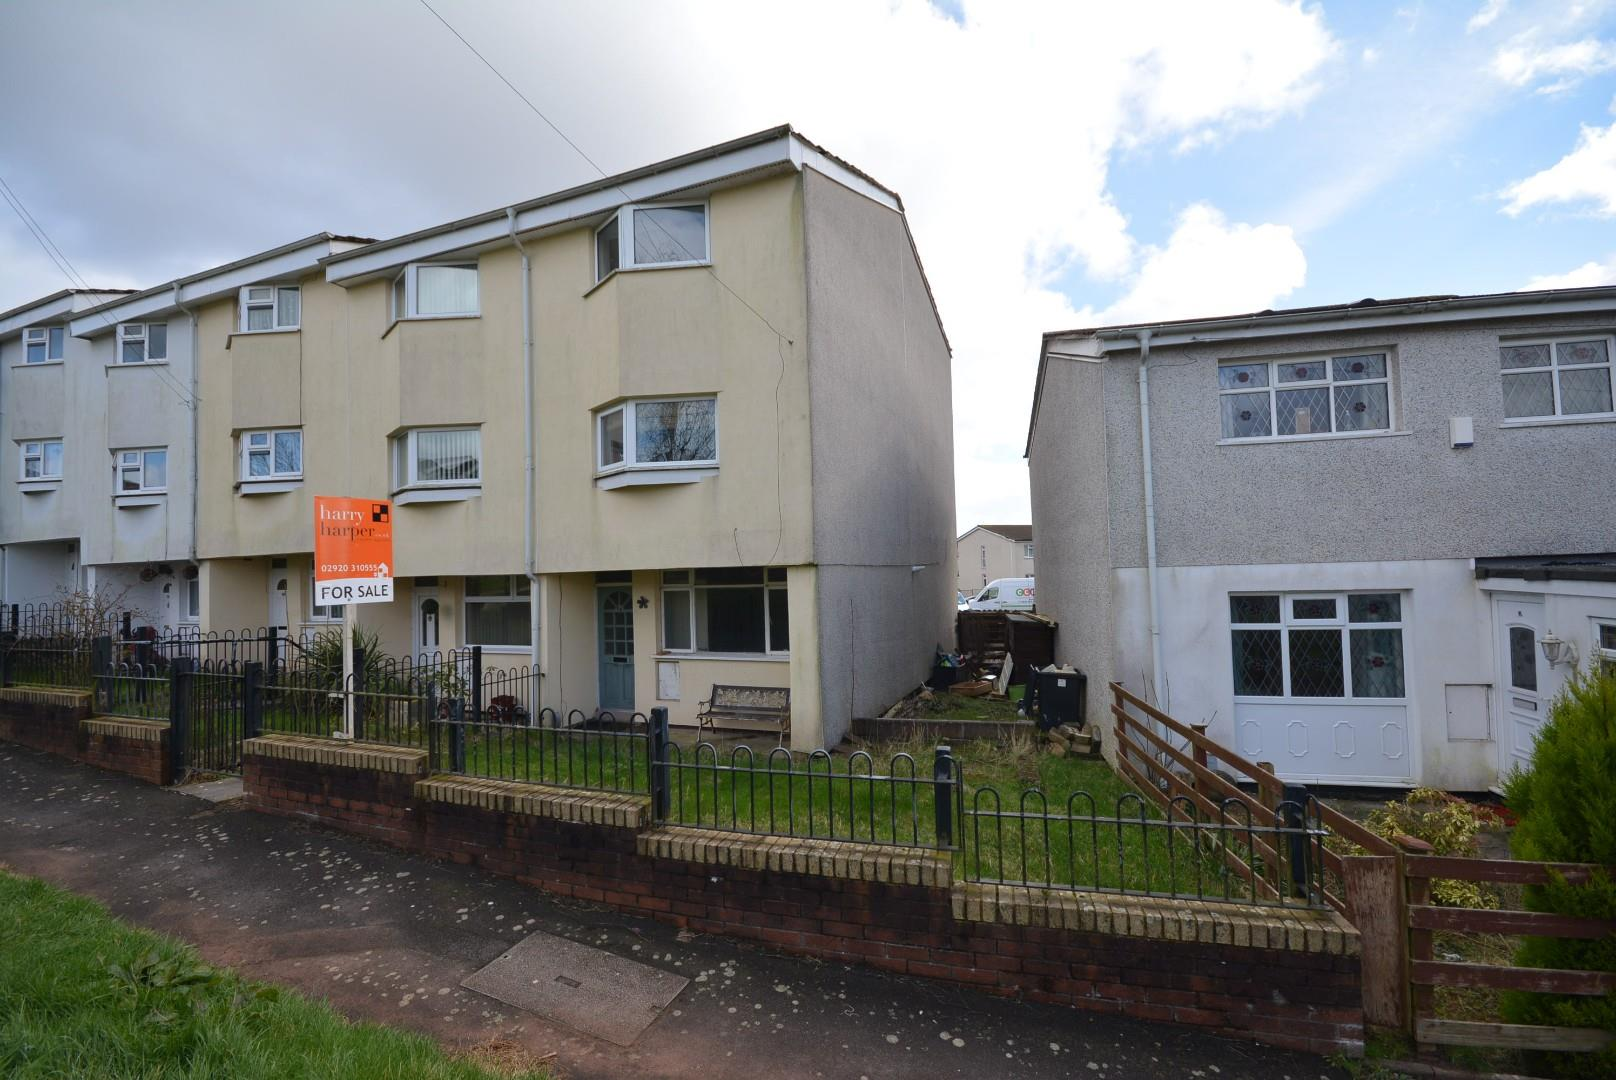 4 bed end of terrace house to rent in Bryn Celyn, Cardiff, CF23